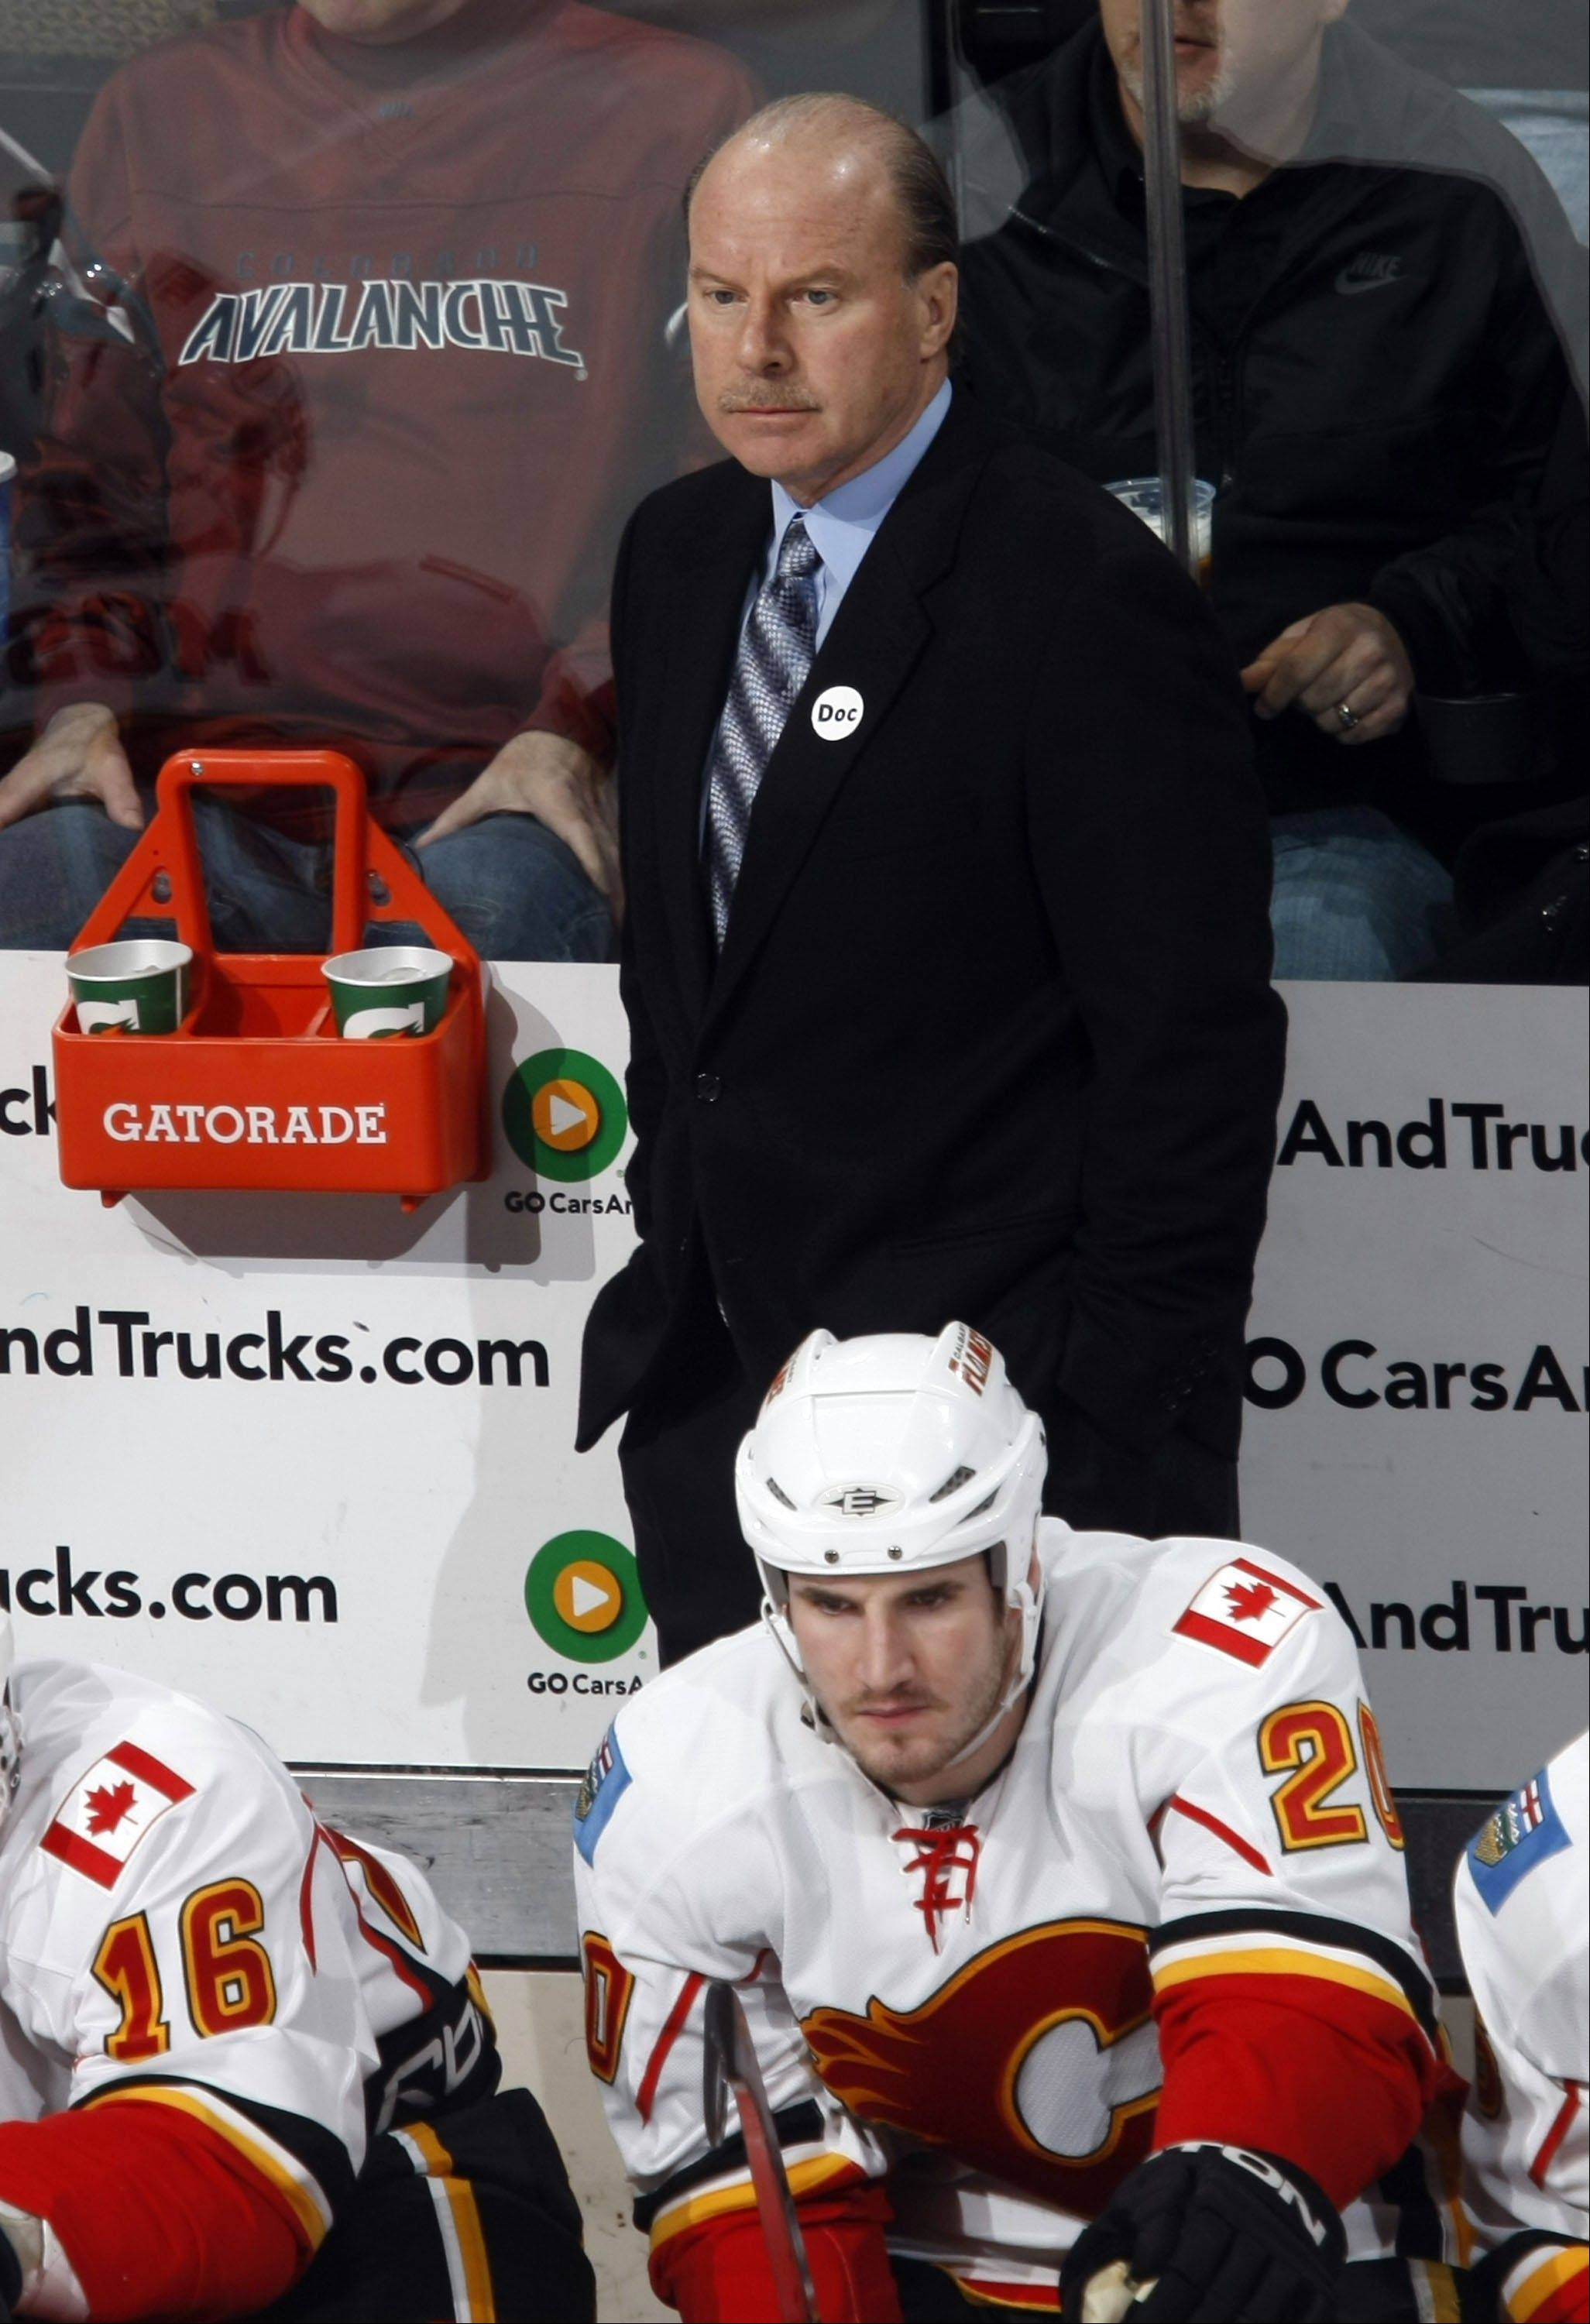 former Calgary Flames head coach Mike Keenan, who also coached six other NHL franchises, has been hired to coach a Russian hockey club.